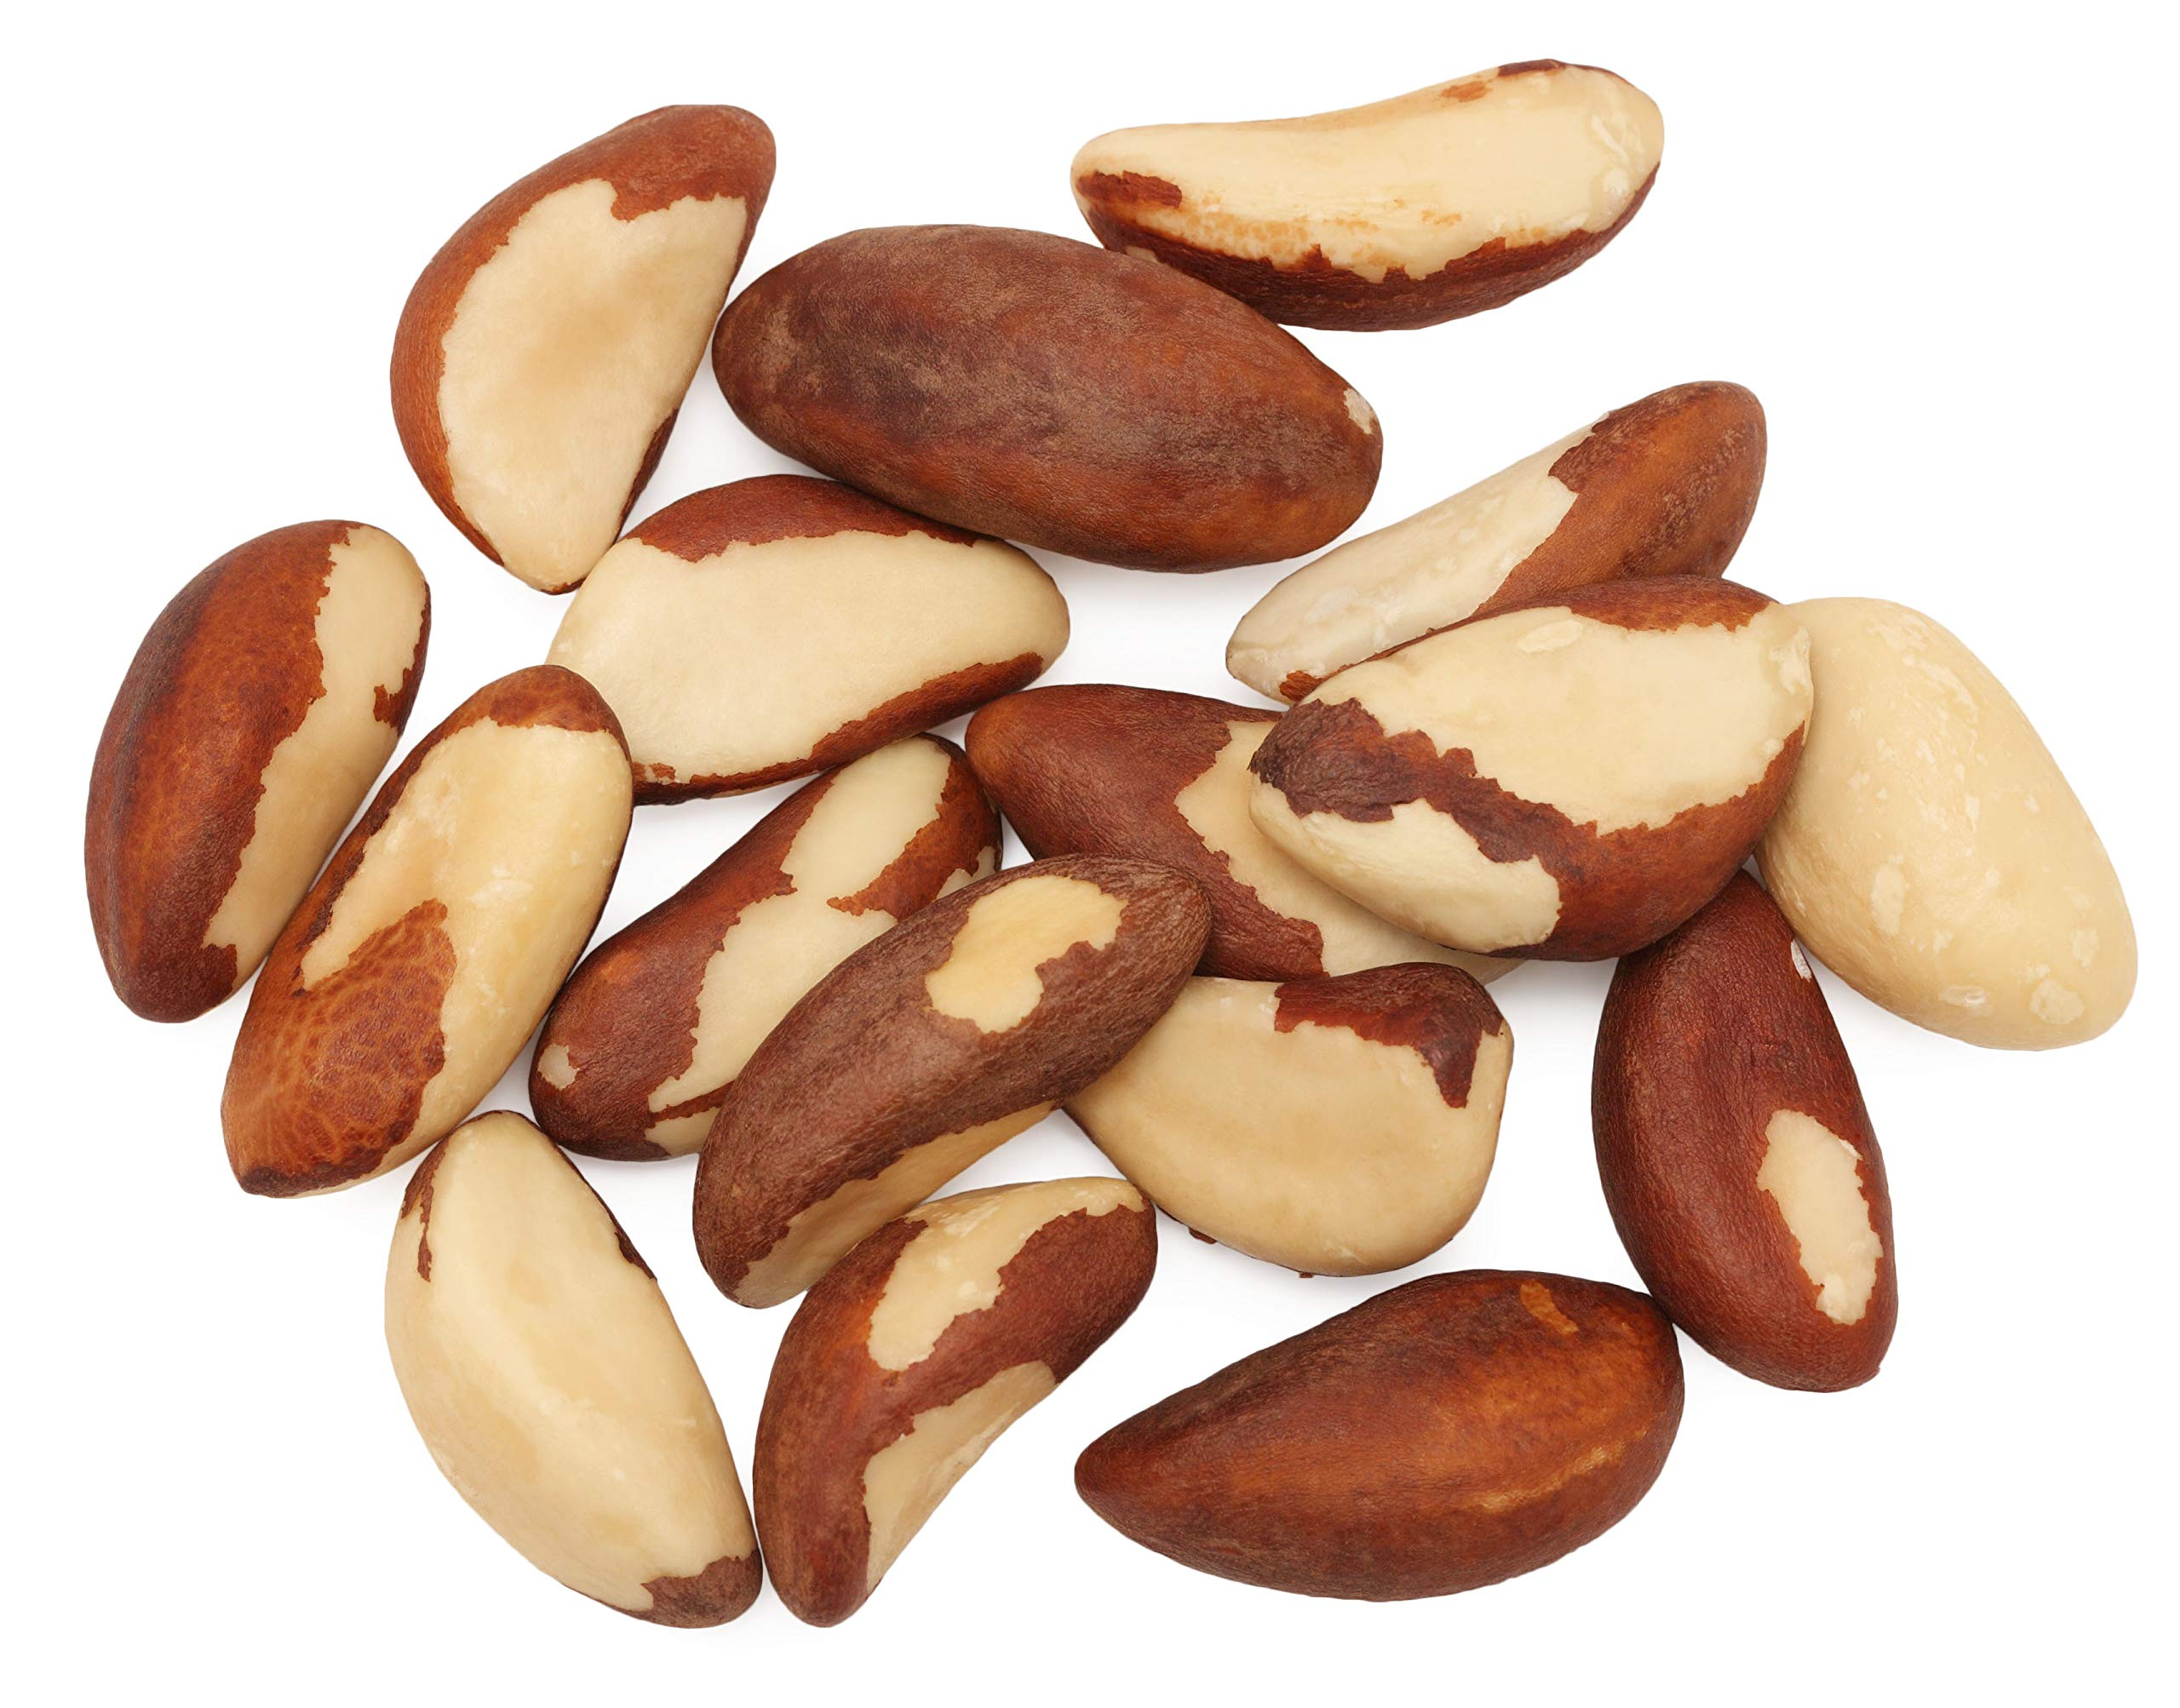 Anna and Sarah Organic Raw Brazil Nuts 1 Lb in Resealable Bag by Anna and Sarah (Image #1)